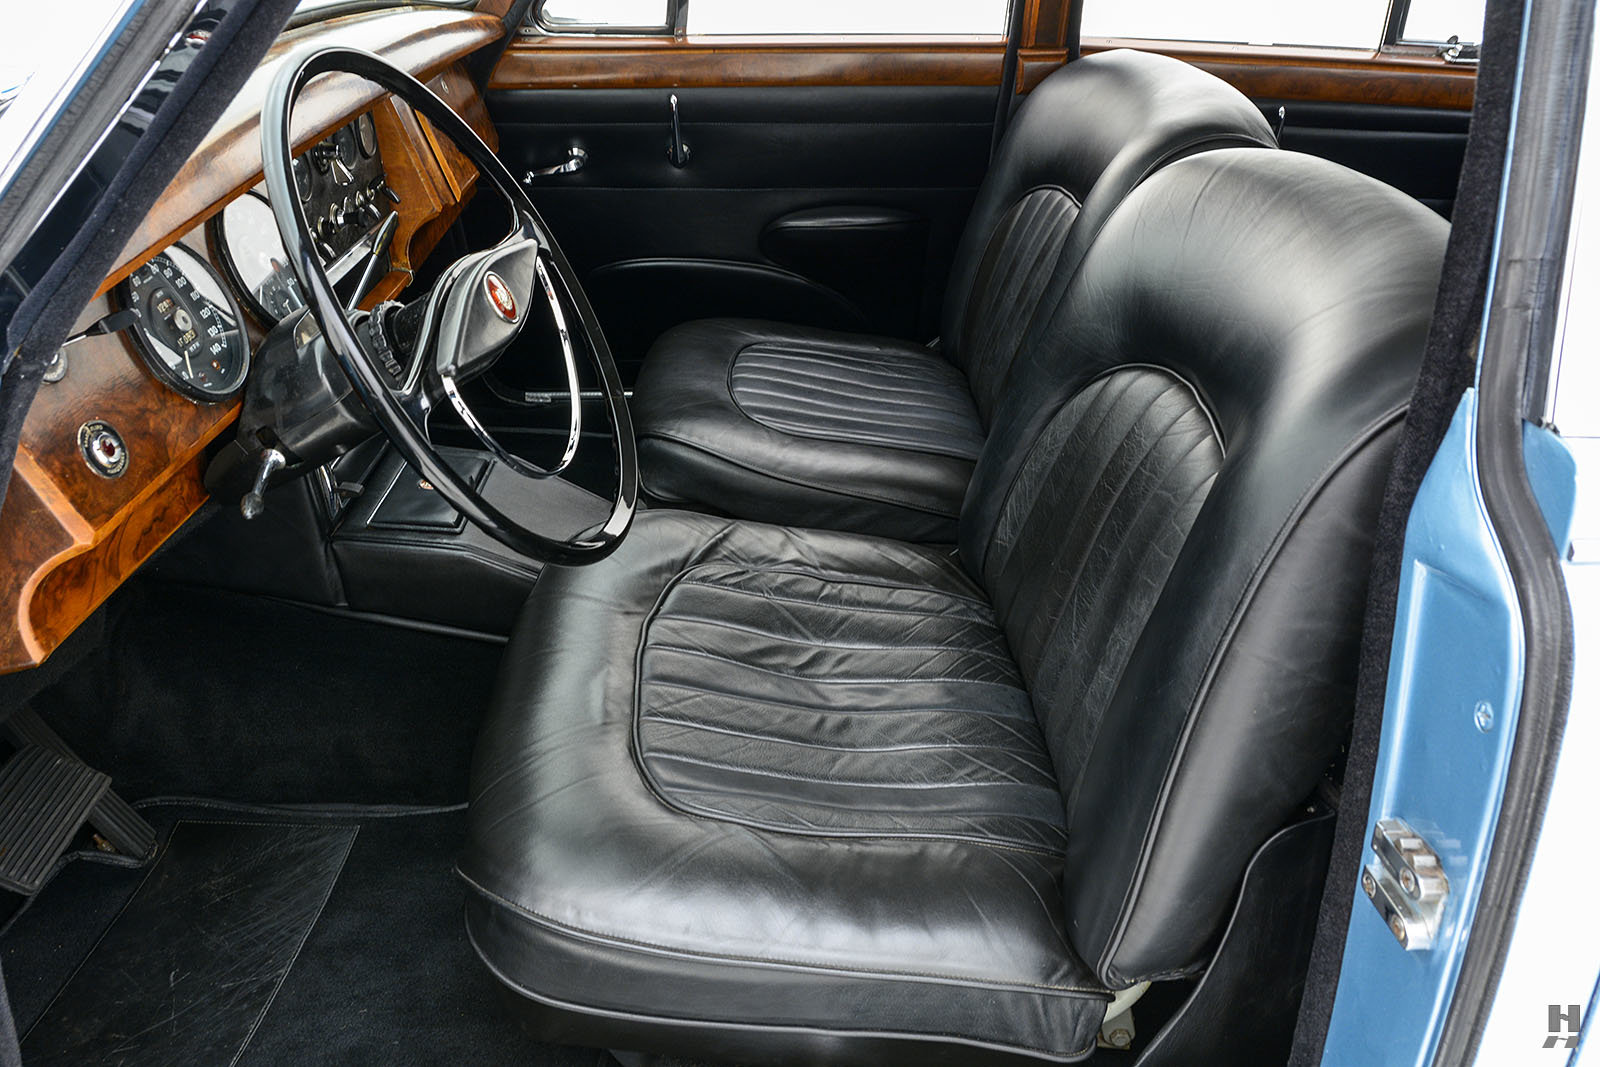 1963 JAGUAR MK II 3.8 SALOON For Sale (picture 4 of 6)